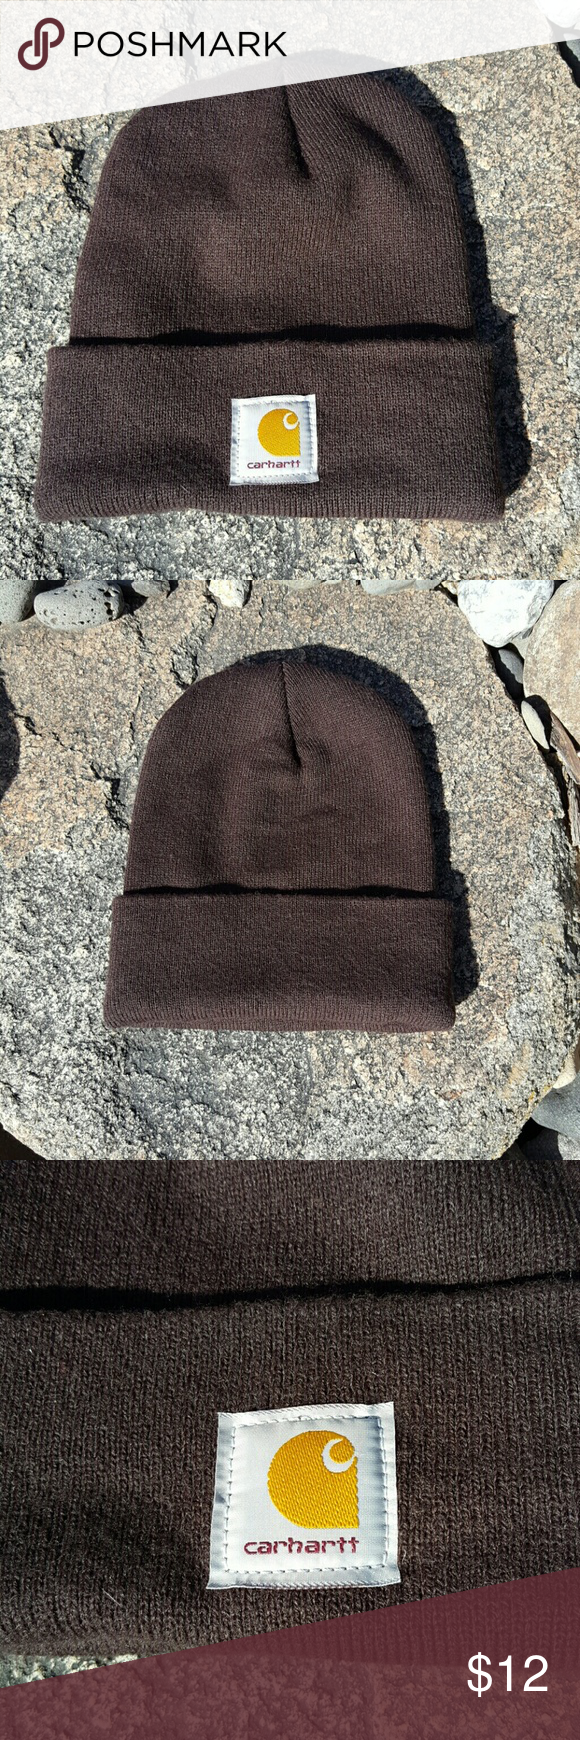 2056eac3ca8 Brown Carhartt Hat Carhartt Brown Color Stretchy Fit Perfect Condition!  Only Worn Once Carhartt Accessories Hats